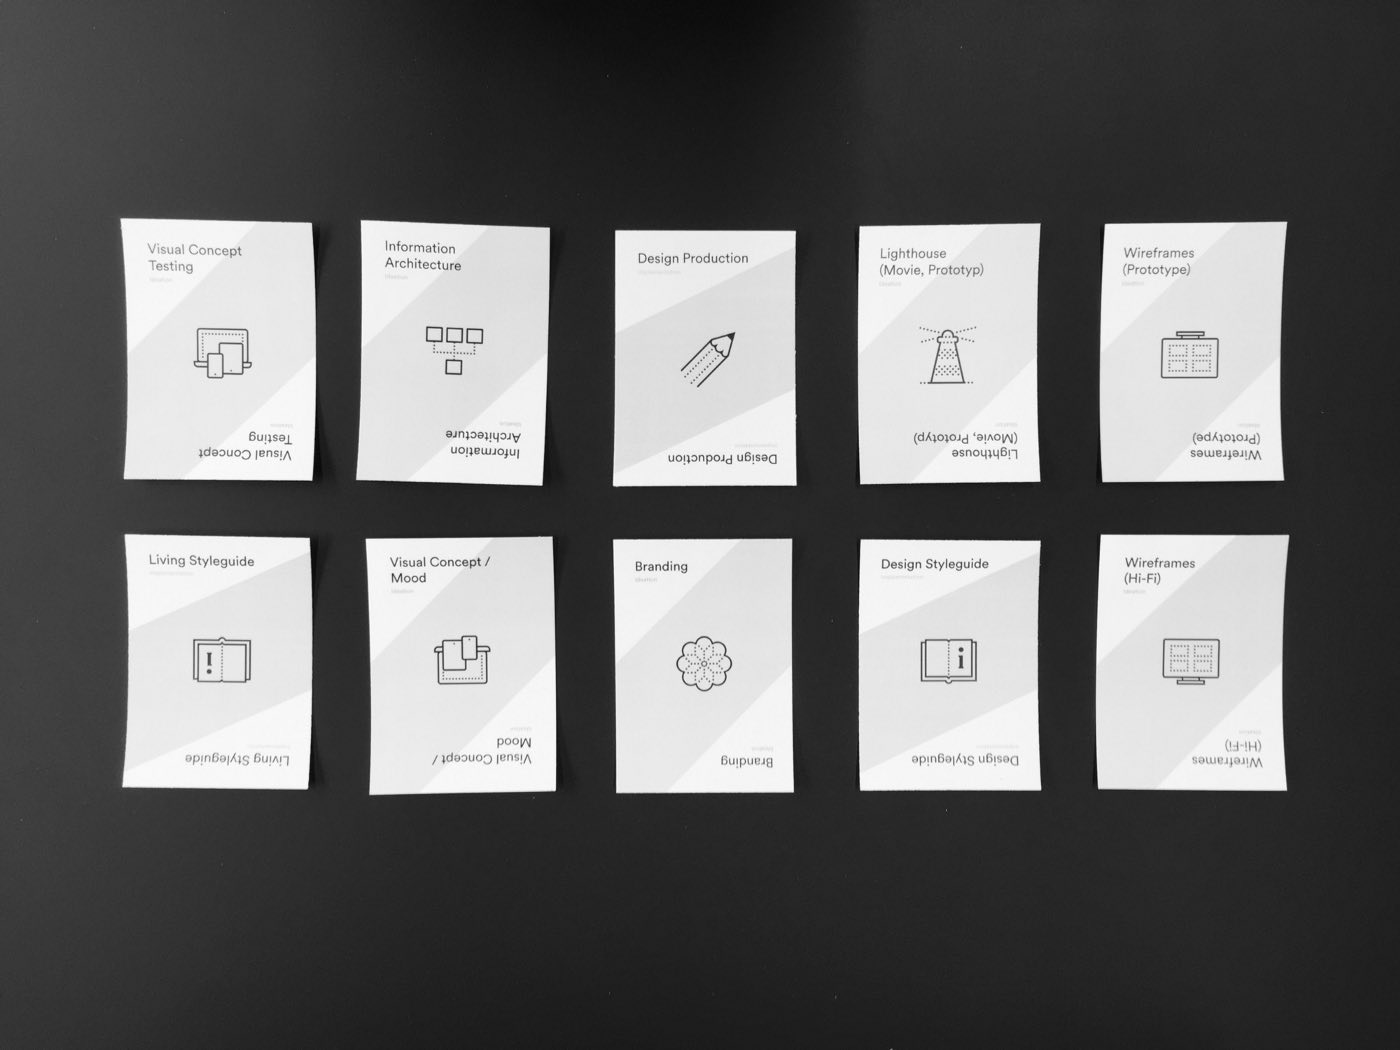 Sample project artefact cards used in our design production process.